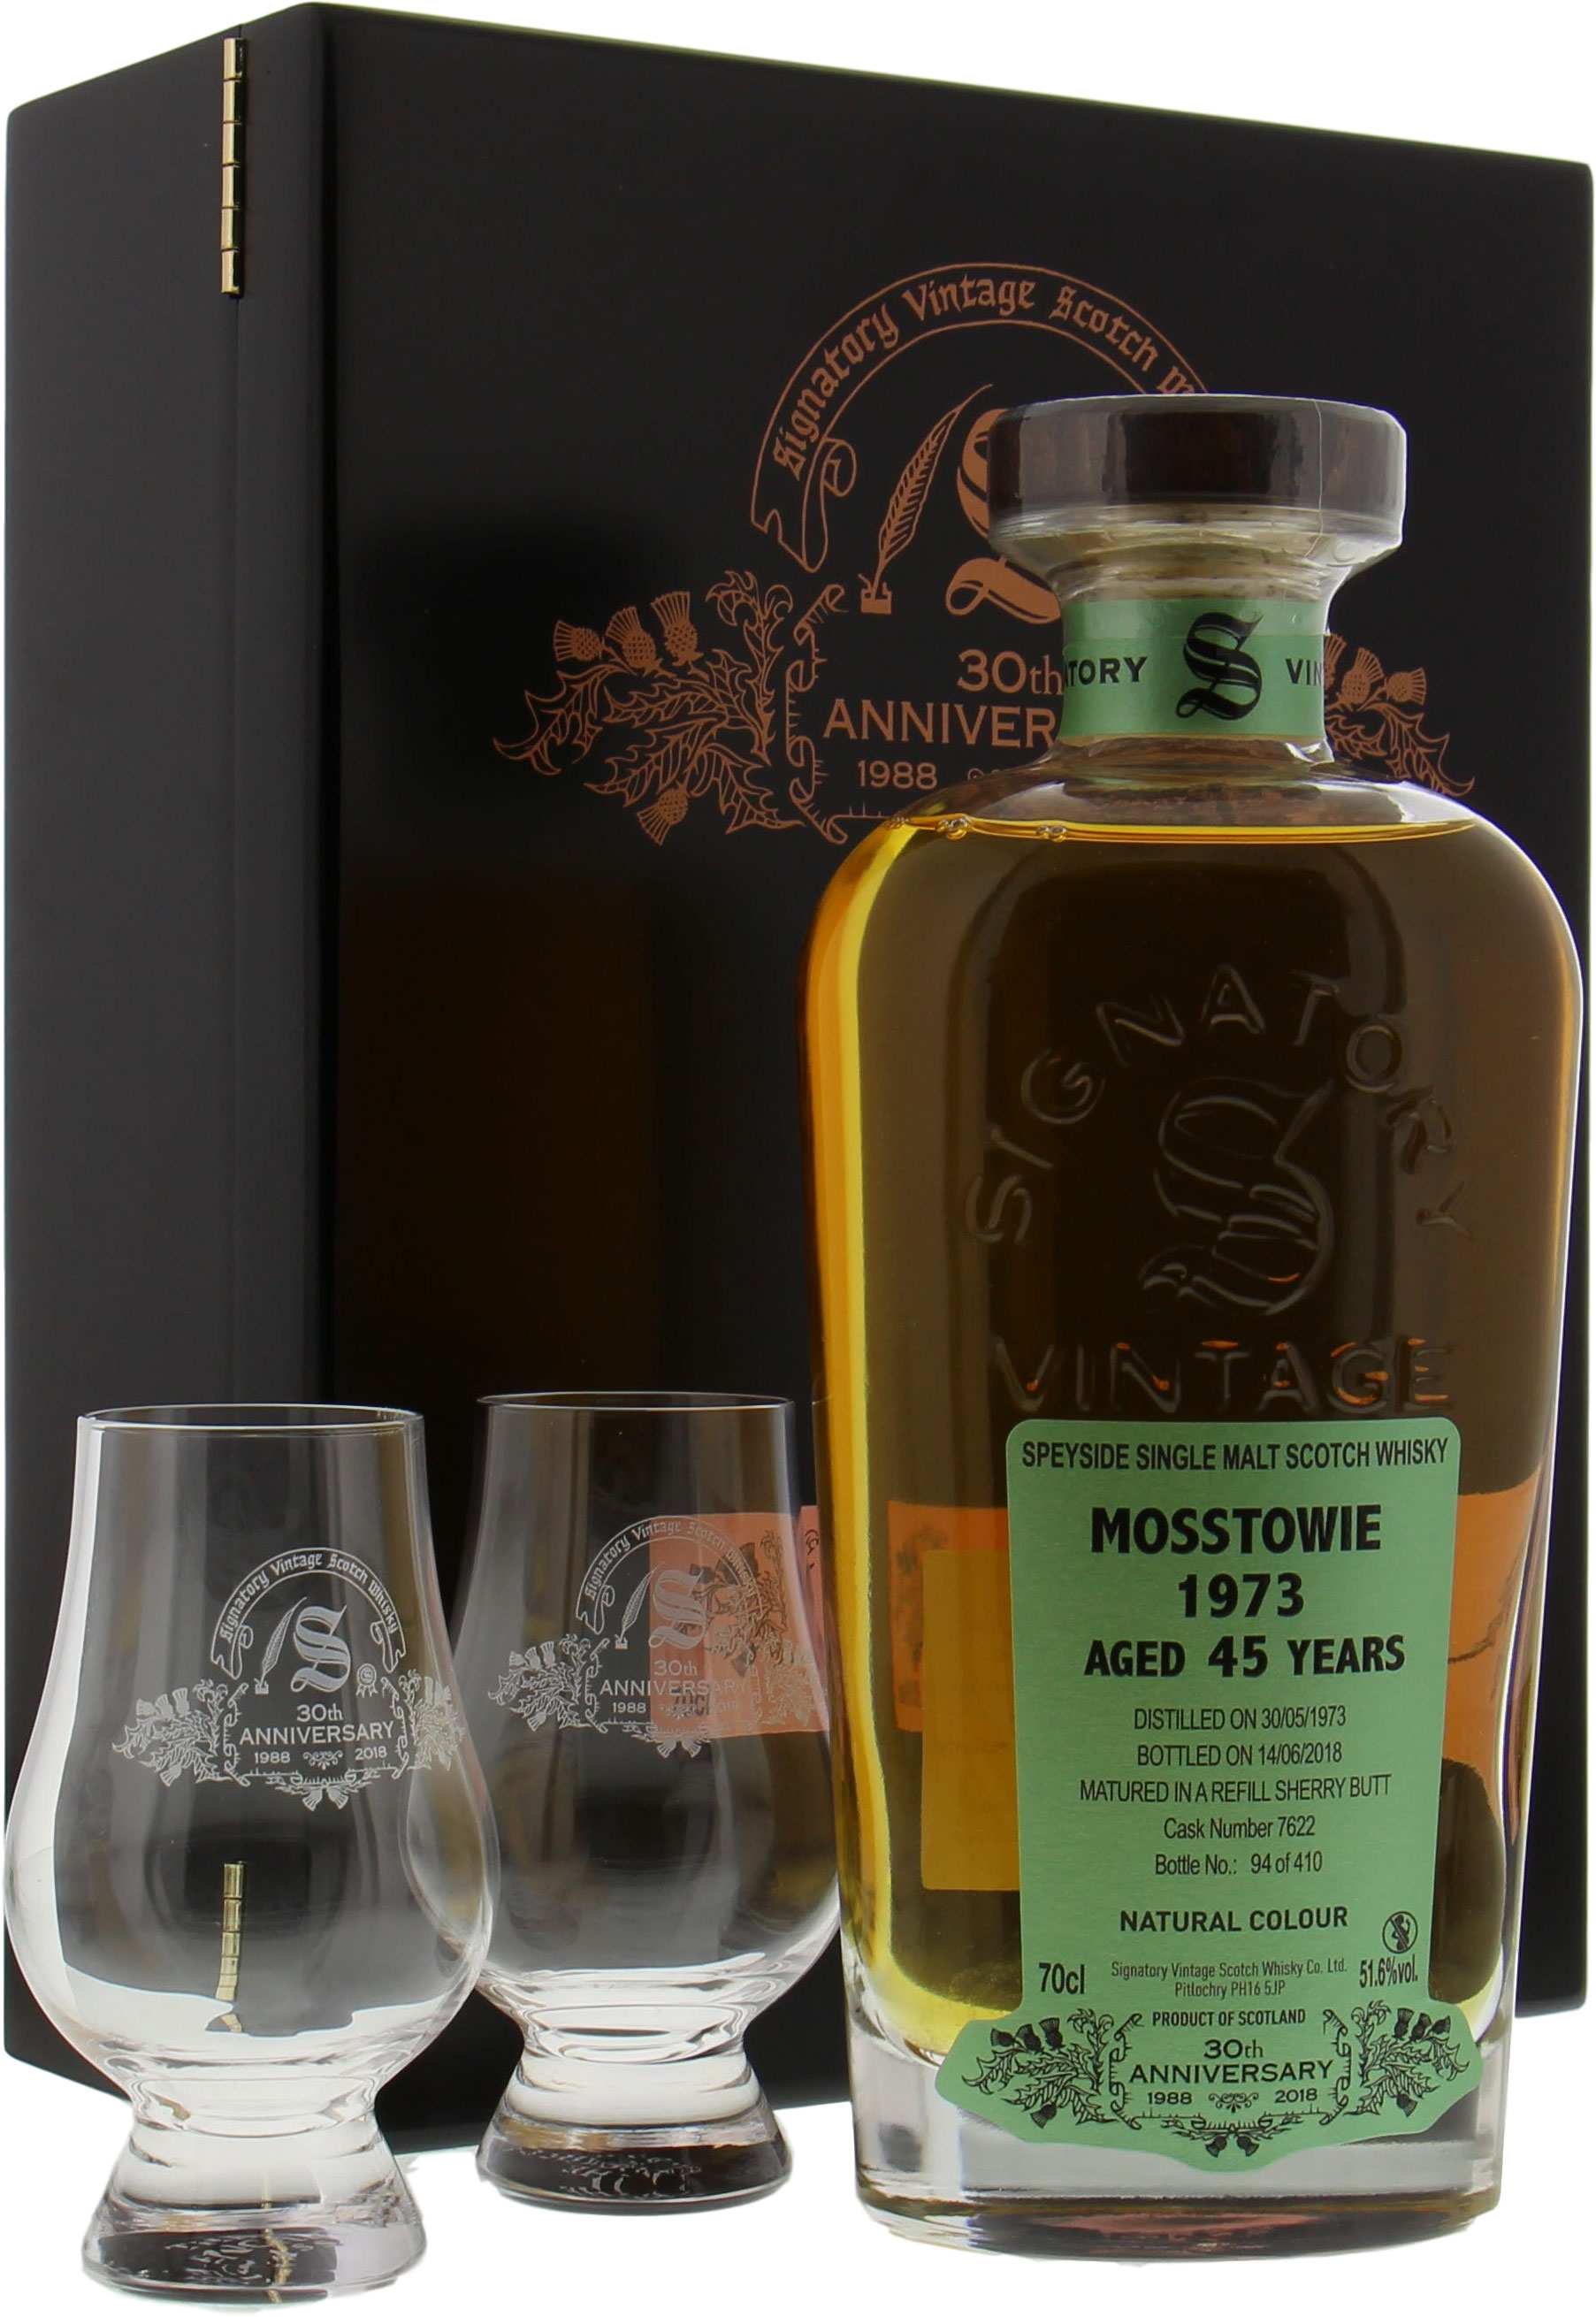 Mosstowie - 45 Years Old Signatory 30th Anniversary Cask 7622 51.6% 1973